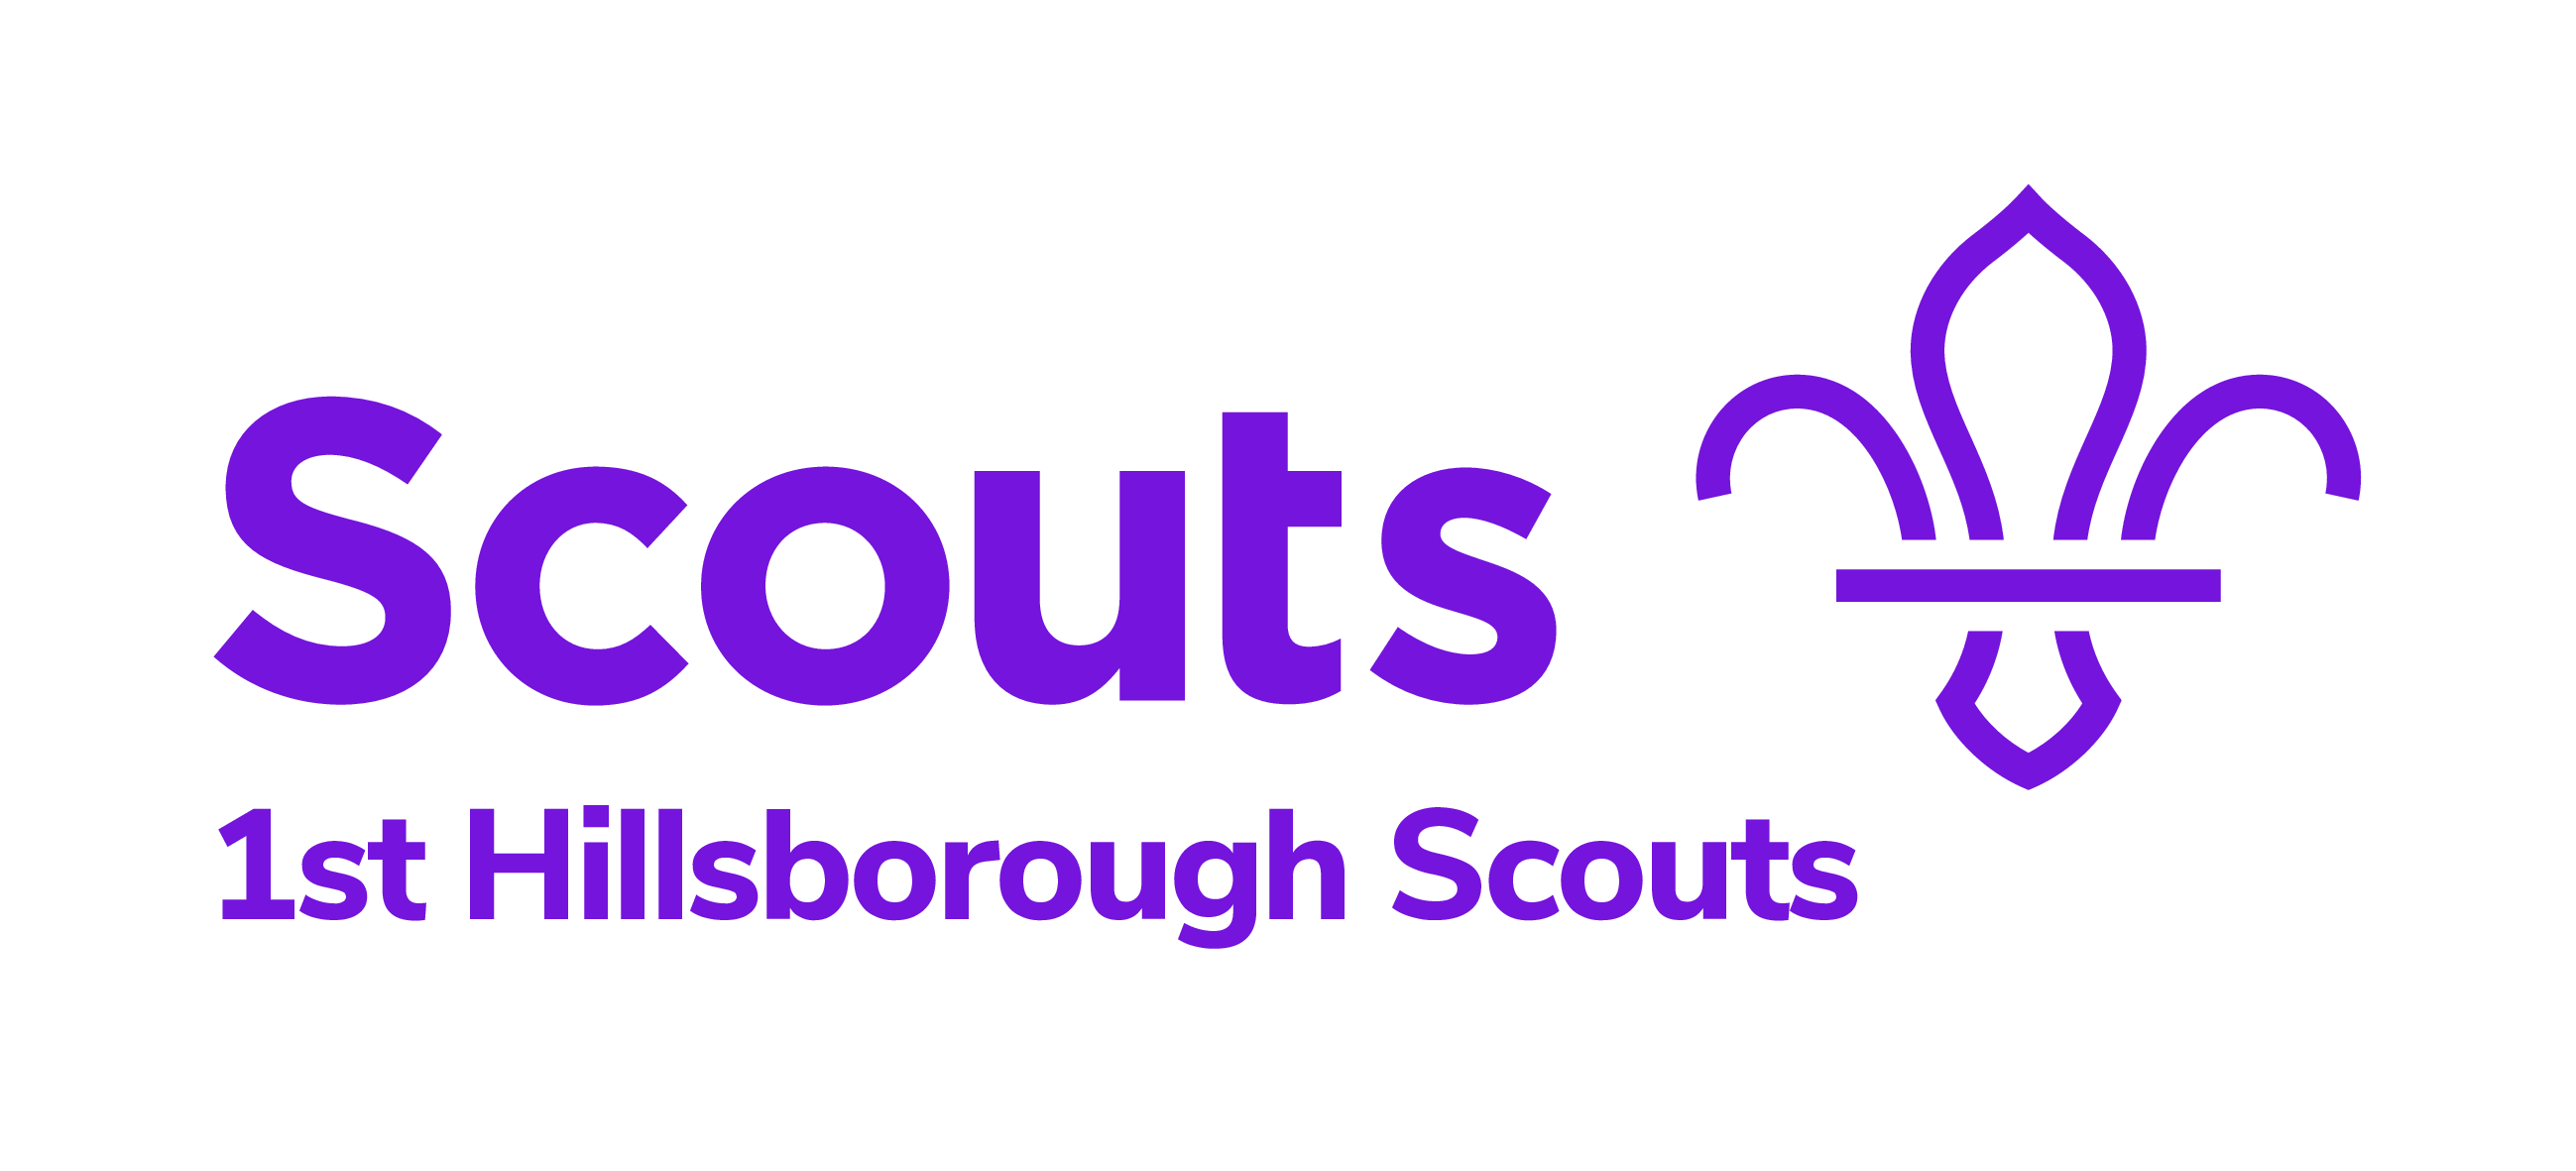 1st Hillsborough Scouts New Logo